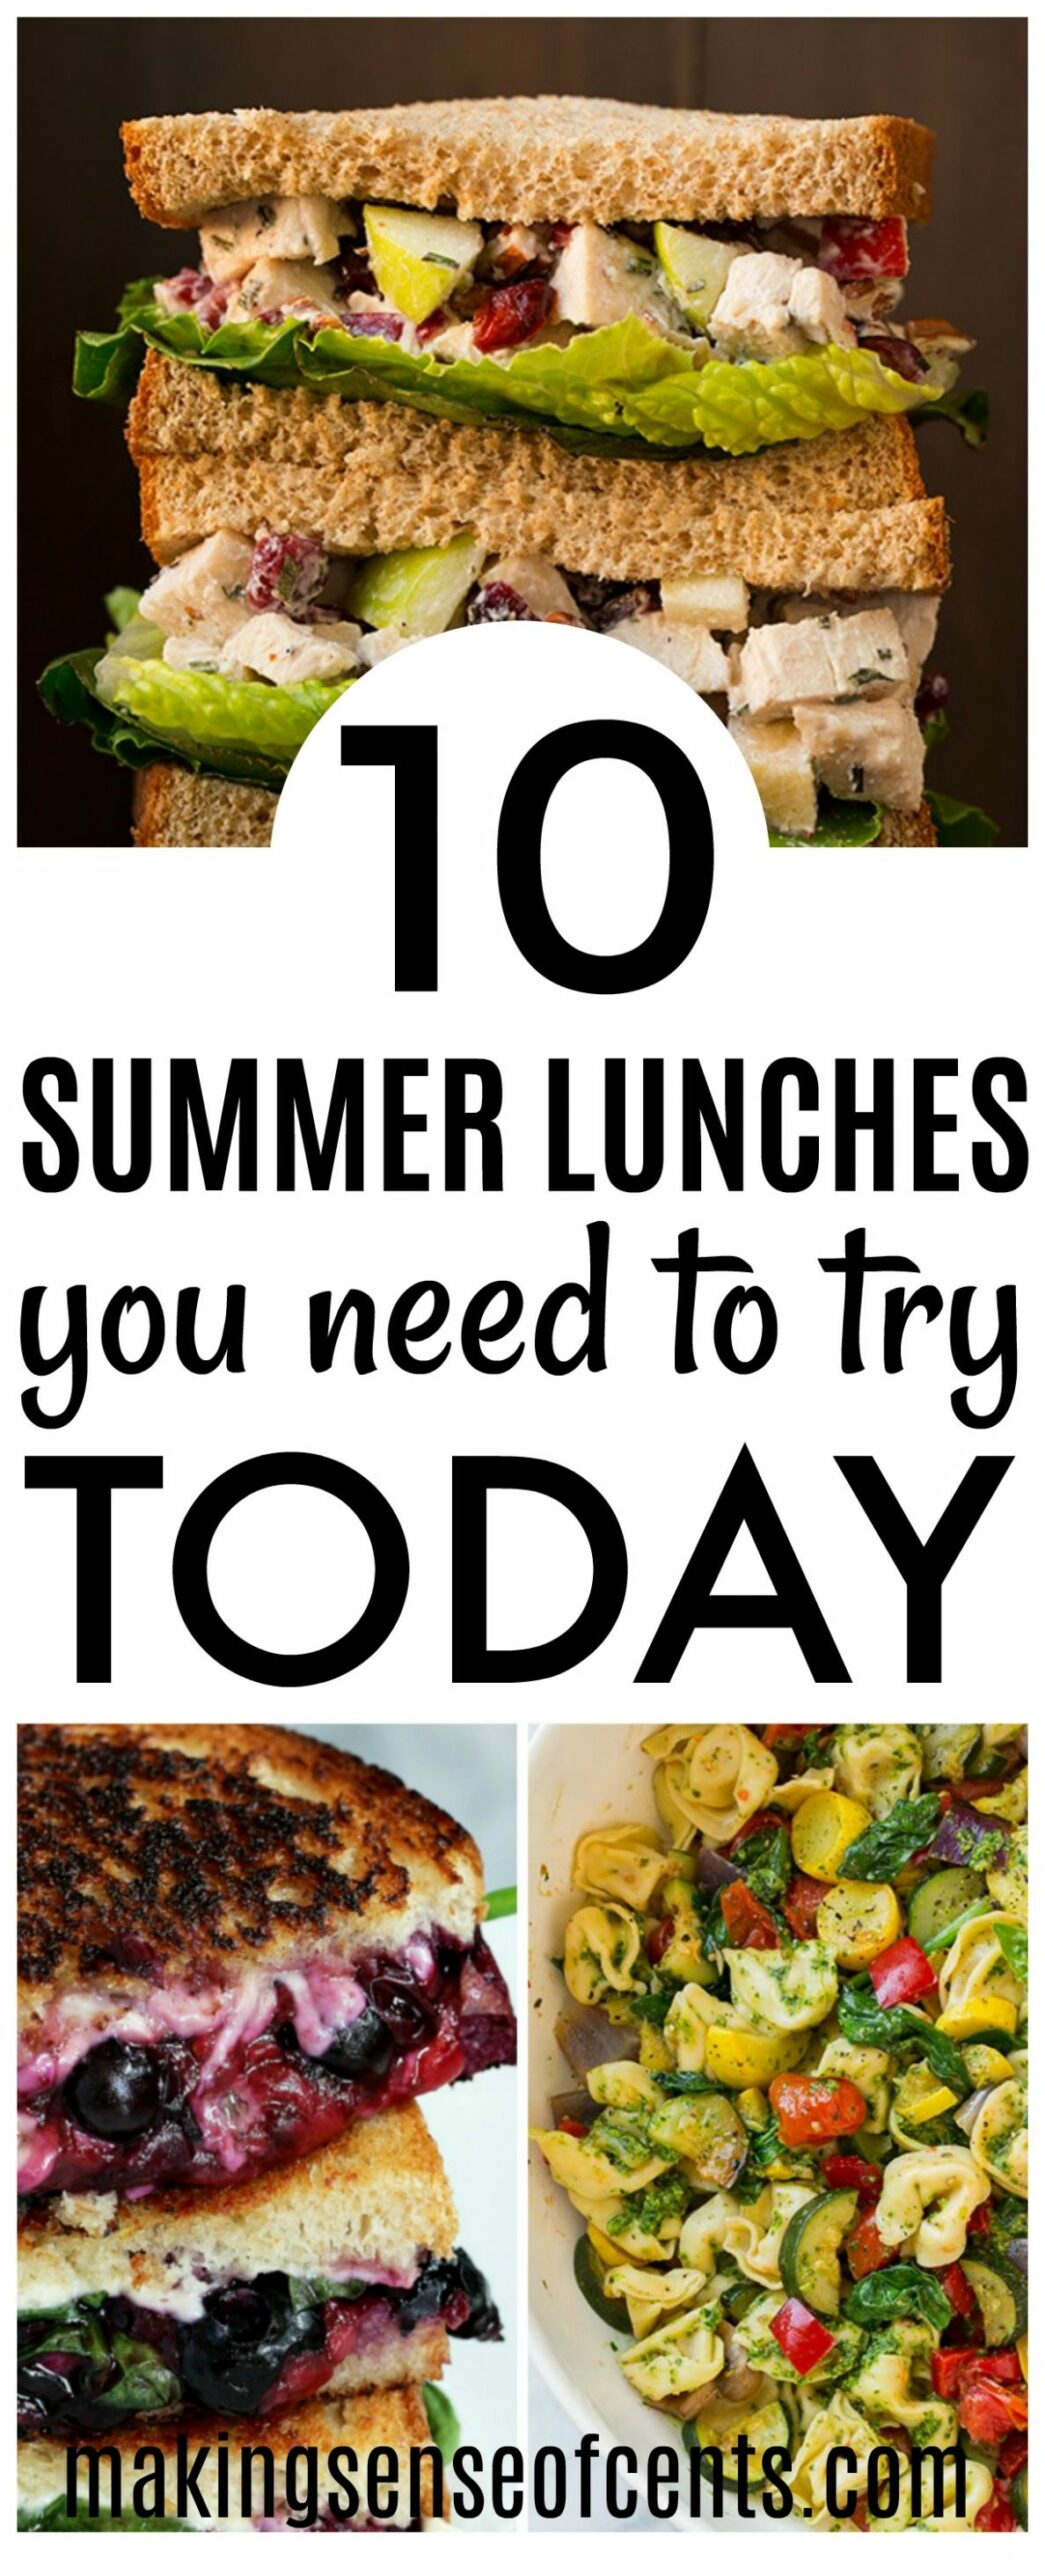 12 Delicious Summer Lunch Ideas - Summer Meals You Need To Make! - Recipes Summer Lunch